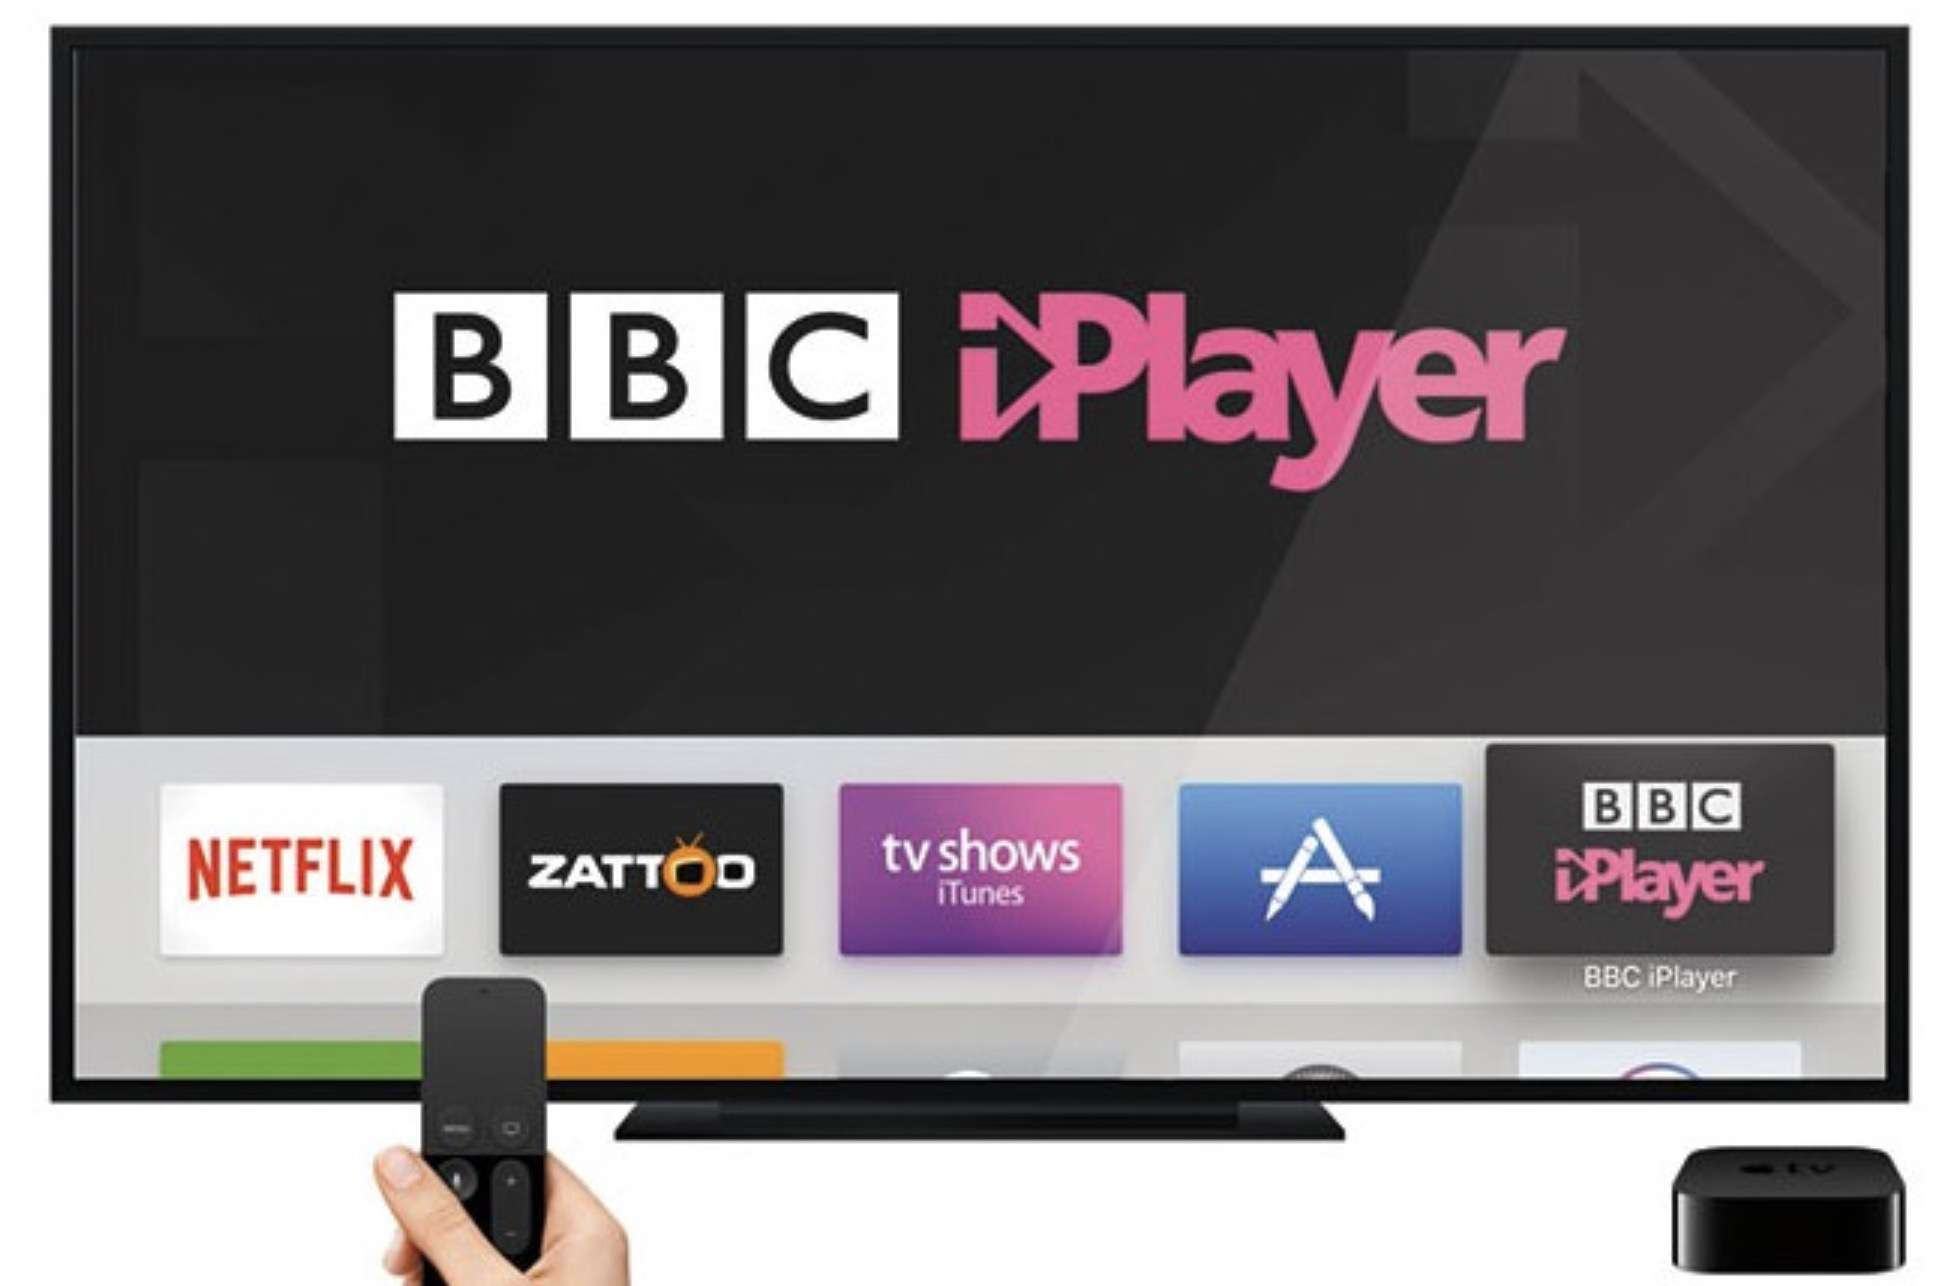 How to watch BBC iPlayer on Apple TV outside UK